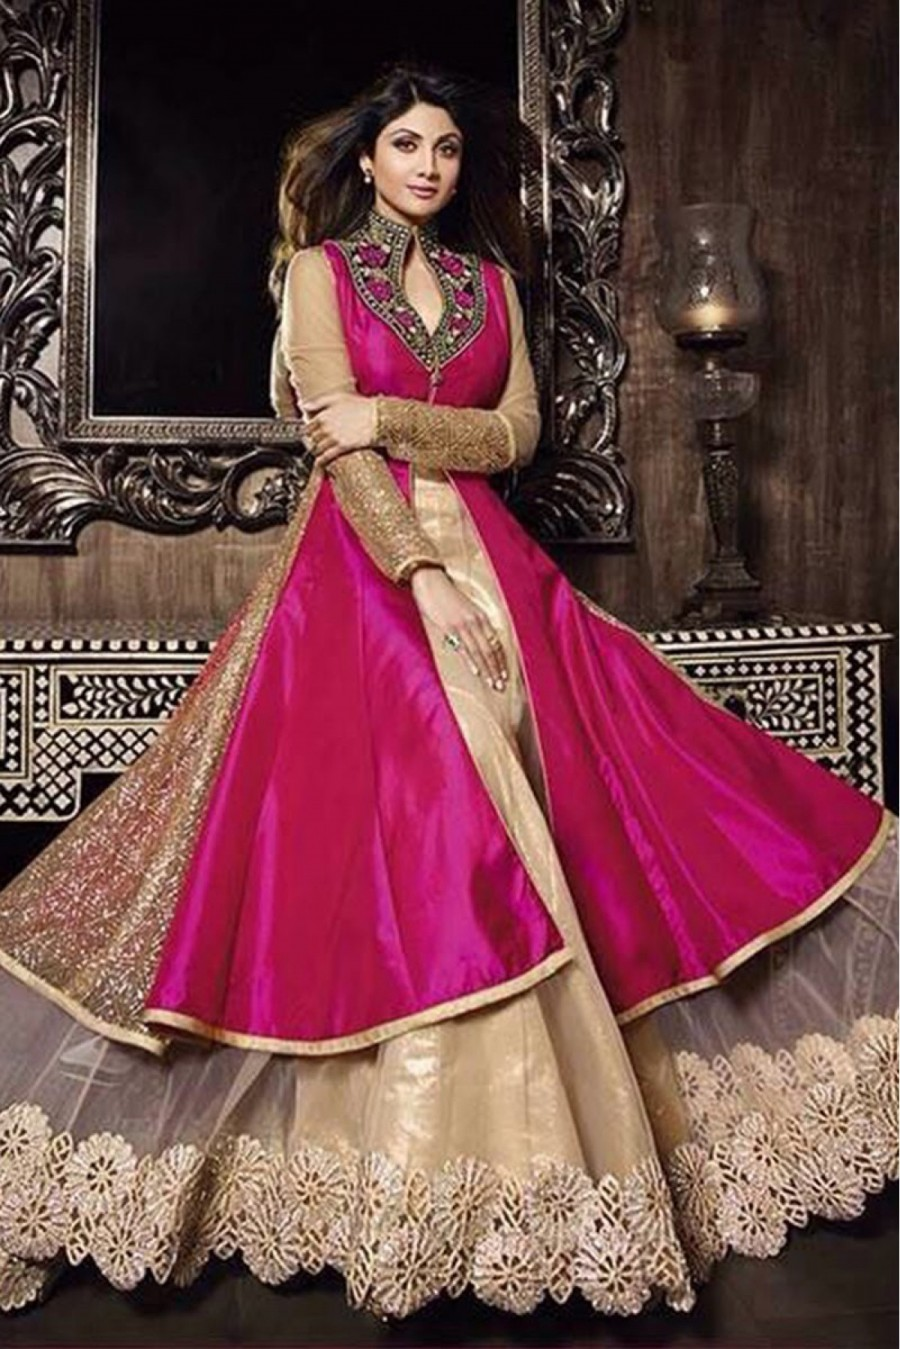 eeac252e66 Buy Bollywood Shilpa Shetty Silk Party Wear Lehenga Suit in Pink Colour  Online